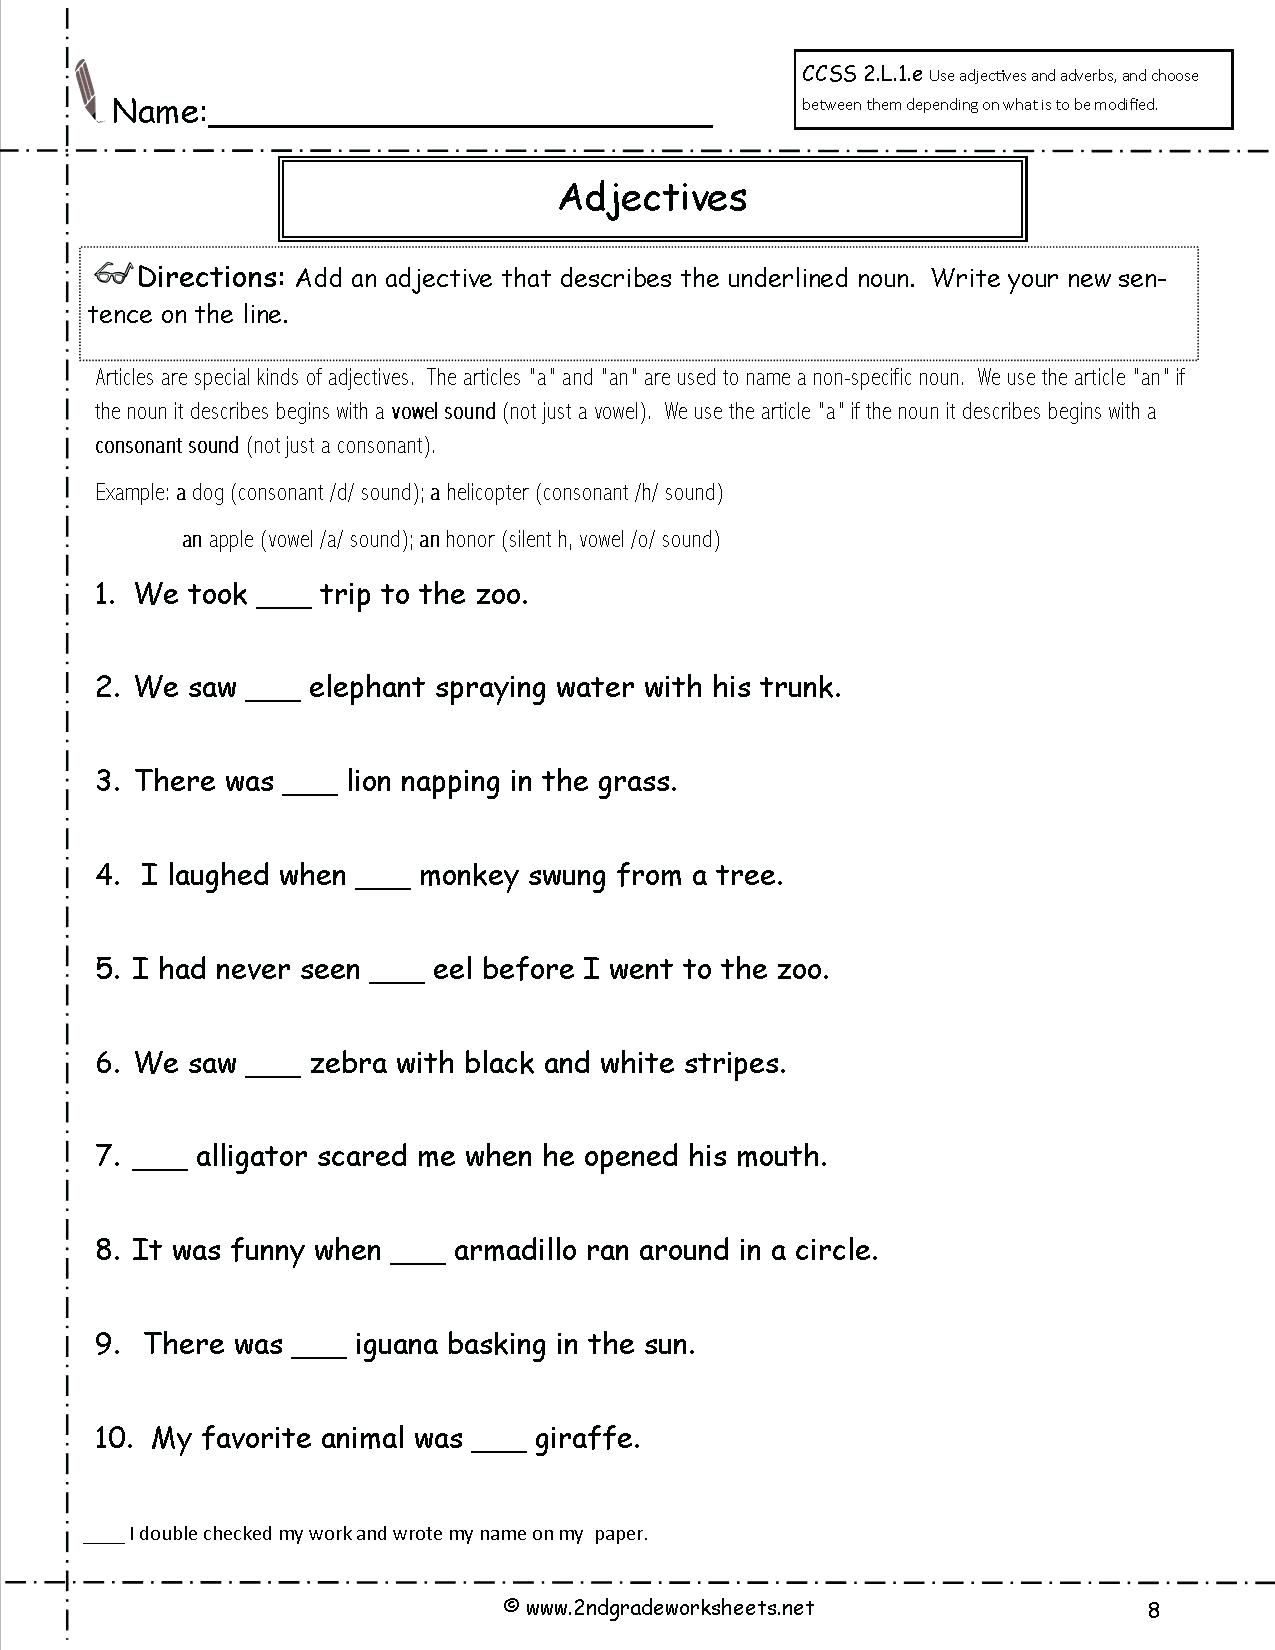 Worksheet : Fifth Grade Science Worksheets Free Printable Fun For | Free Printable Fifth Grade Science Worksheets